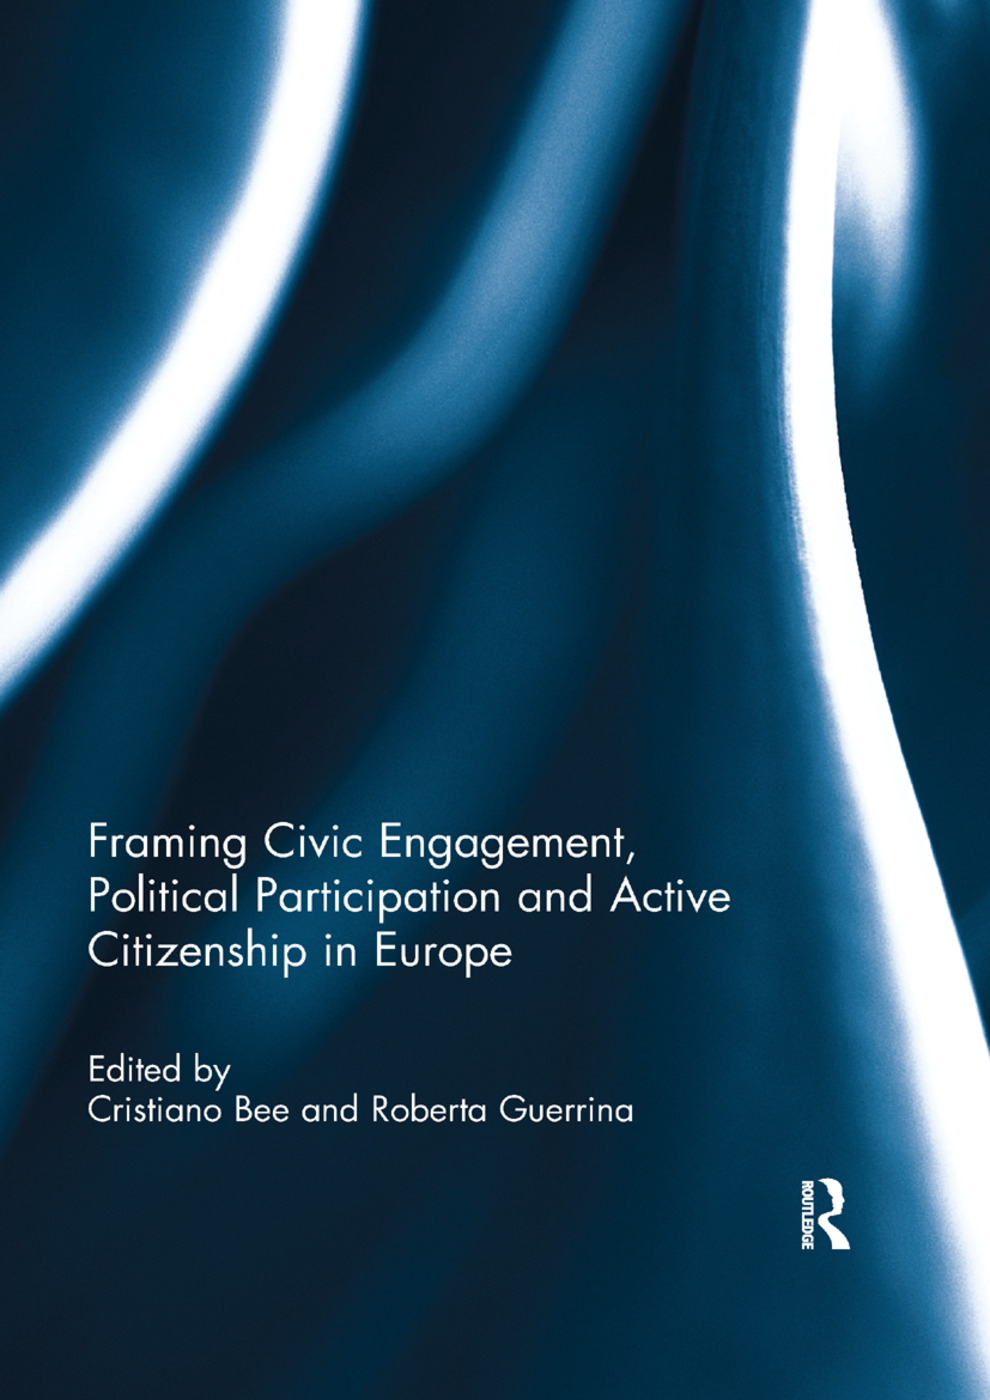 Framing Civic Engagement, Political Participation and Active Citizenship in Europe: 1st Edition (Paperback) book cover